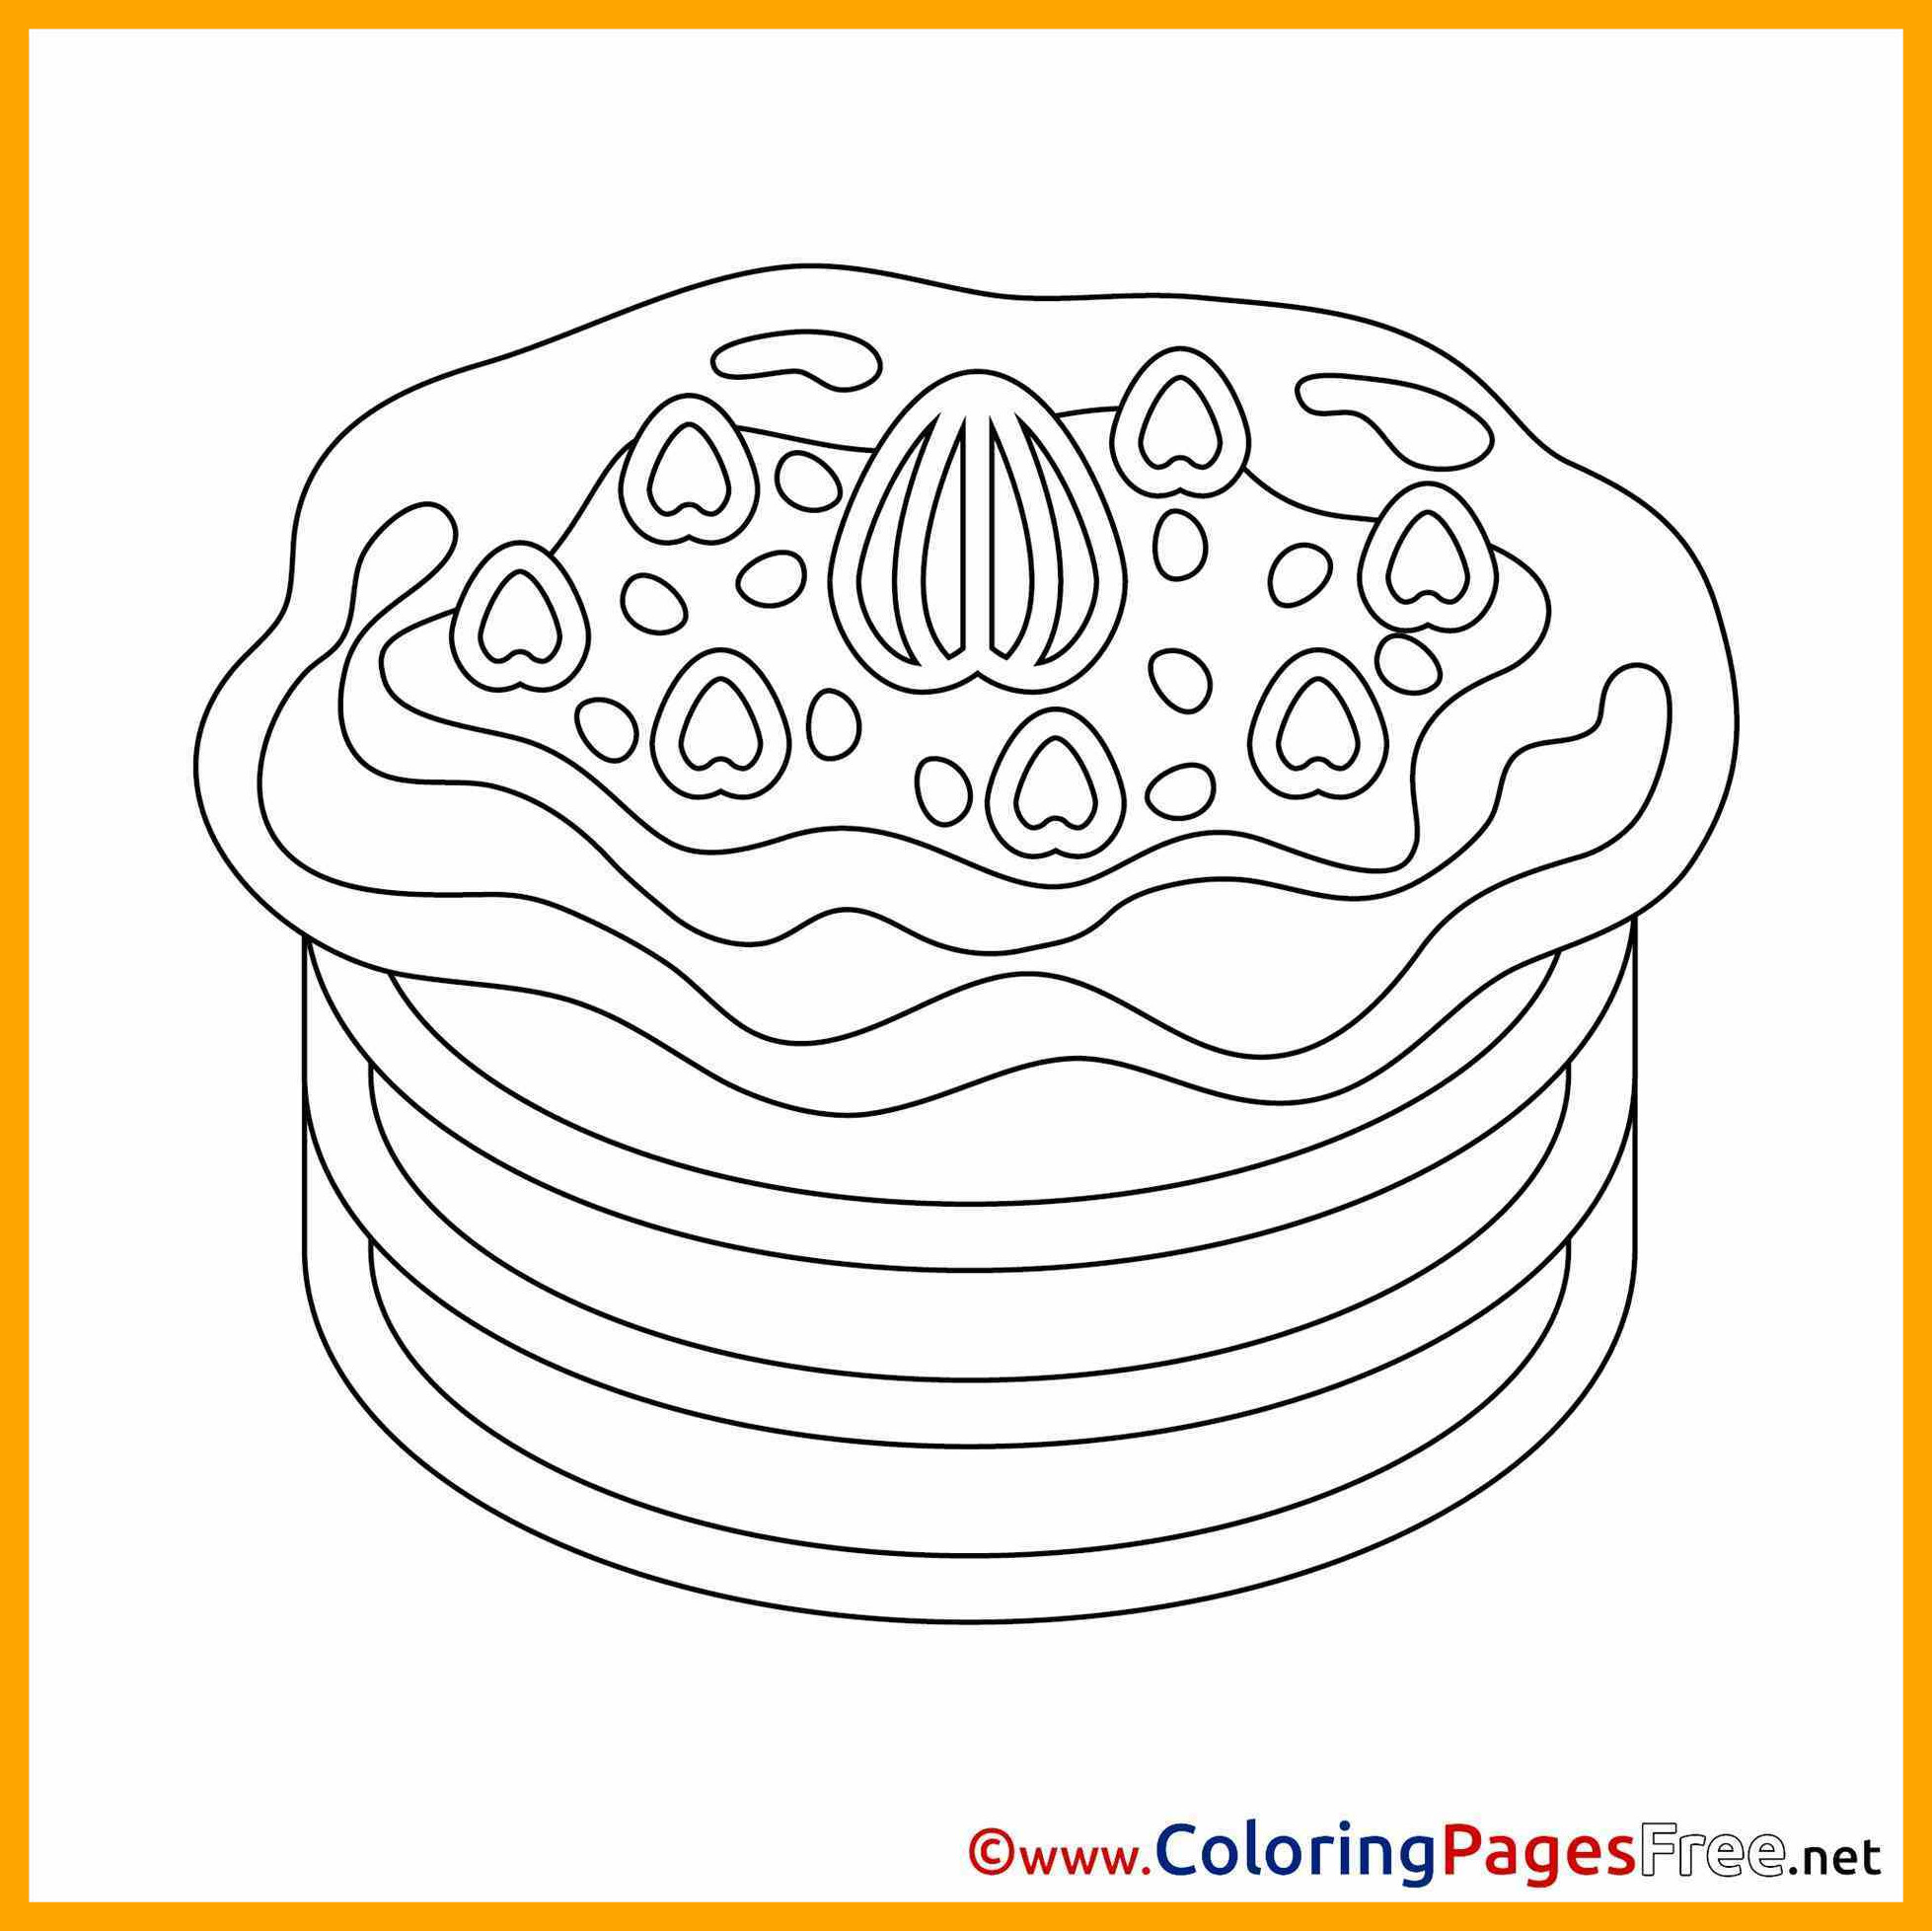 1958x1957 Inspiring Pancake Coloring Page Printable Bltidm For Pig A Styles